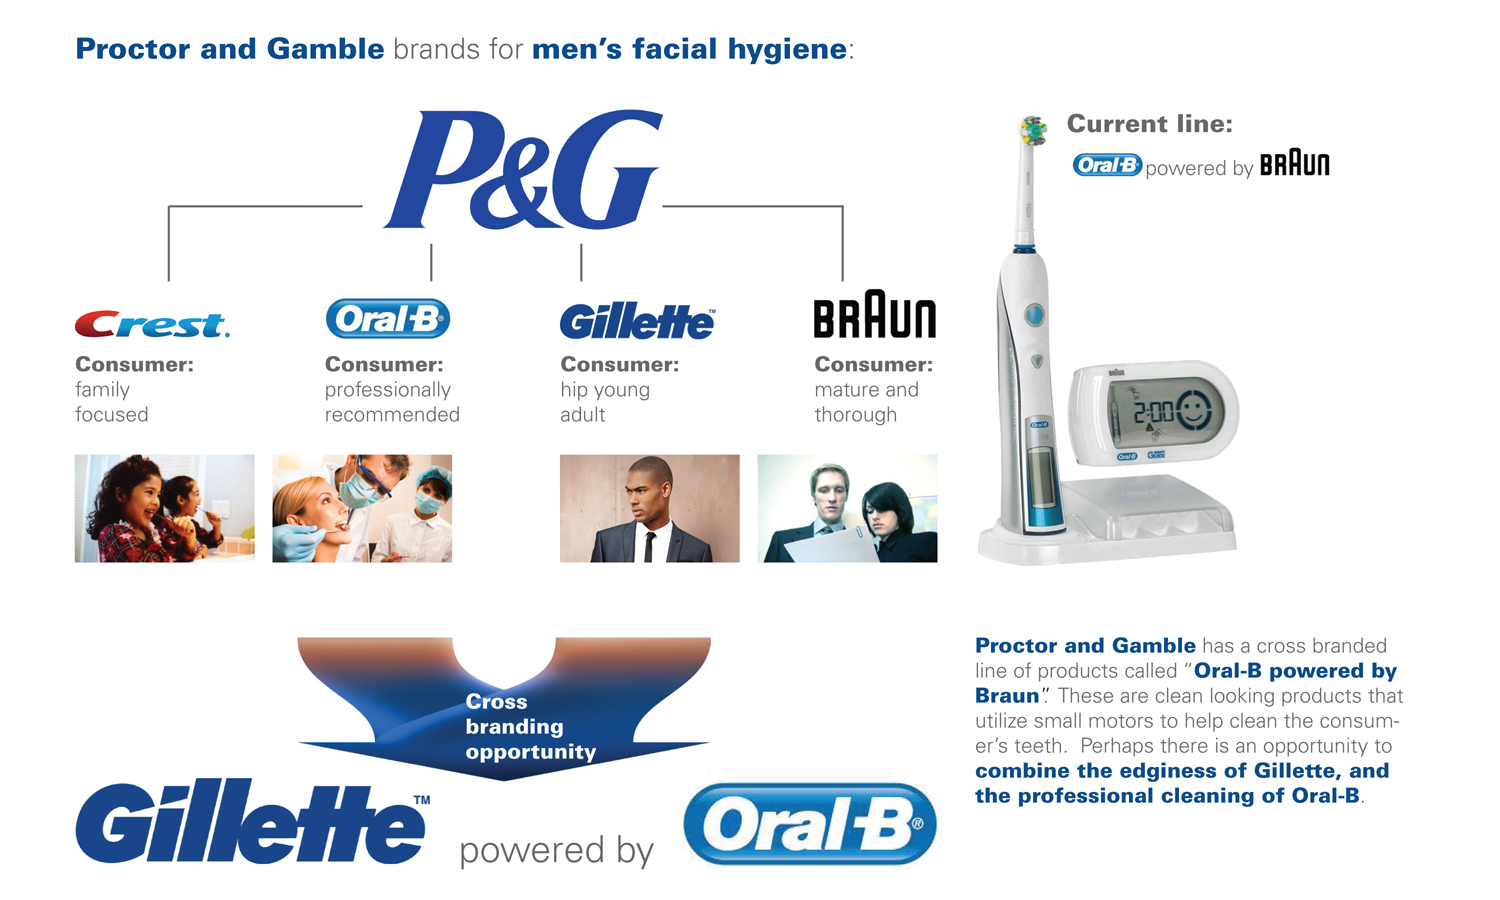 proctor and gamble brand image case study Free case study solution & analysis proctor and gamble is one of america's oldest continuously where its products and brand name are globally recognized and.